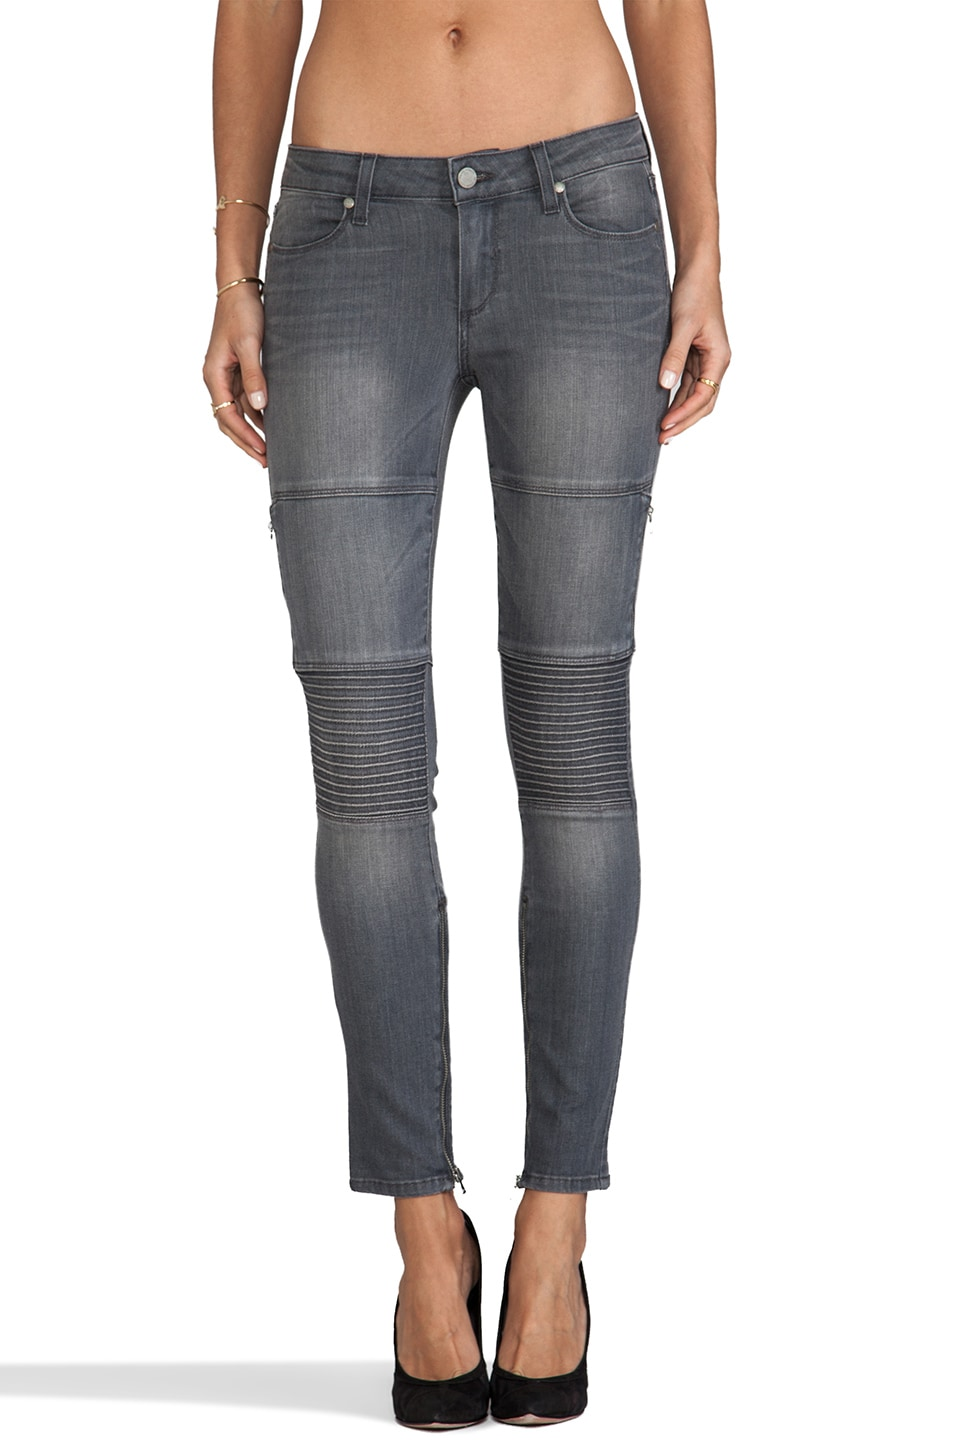 Paige Denim Demi Ultra Skinny in Hart